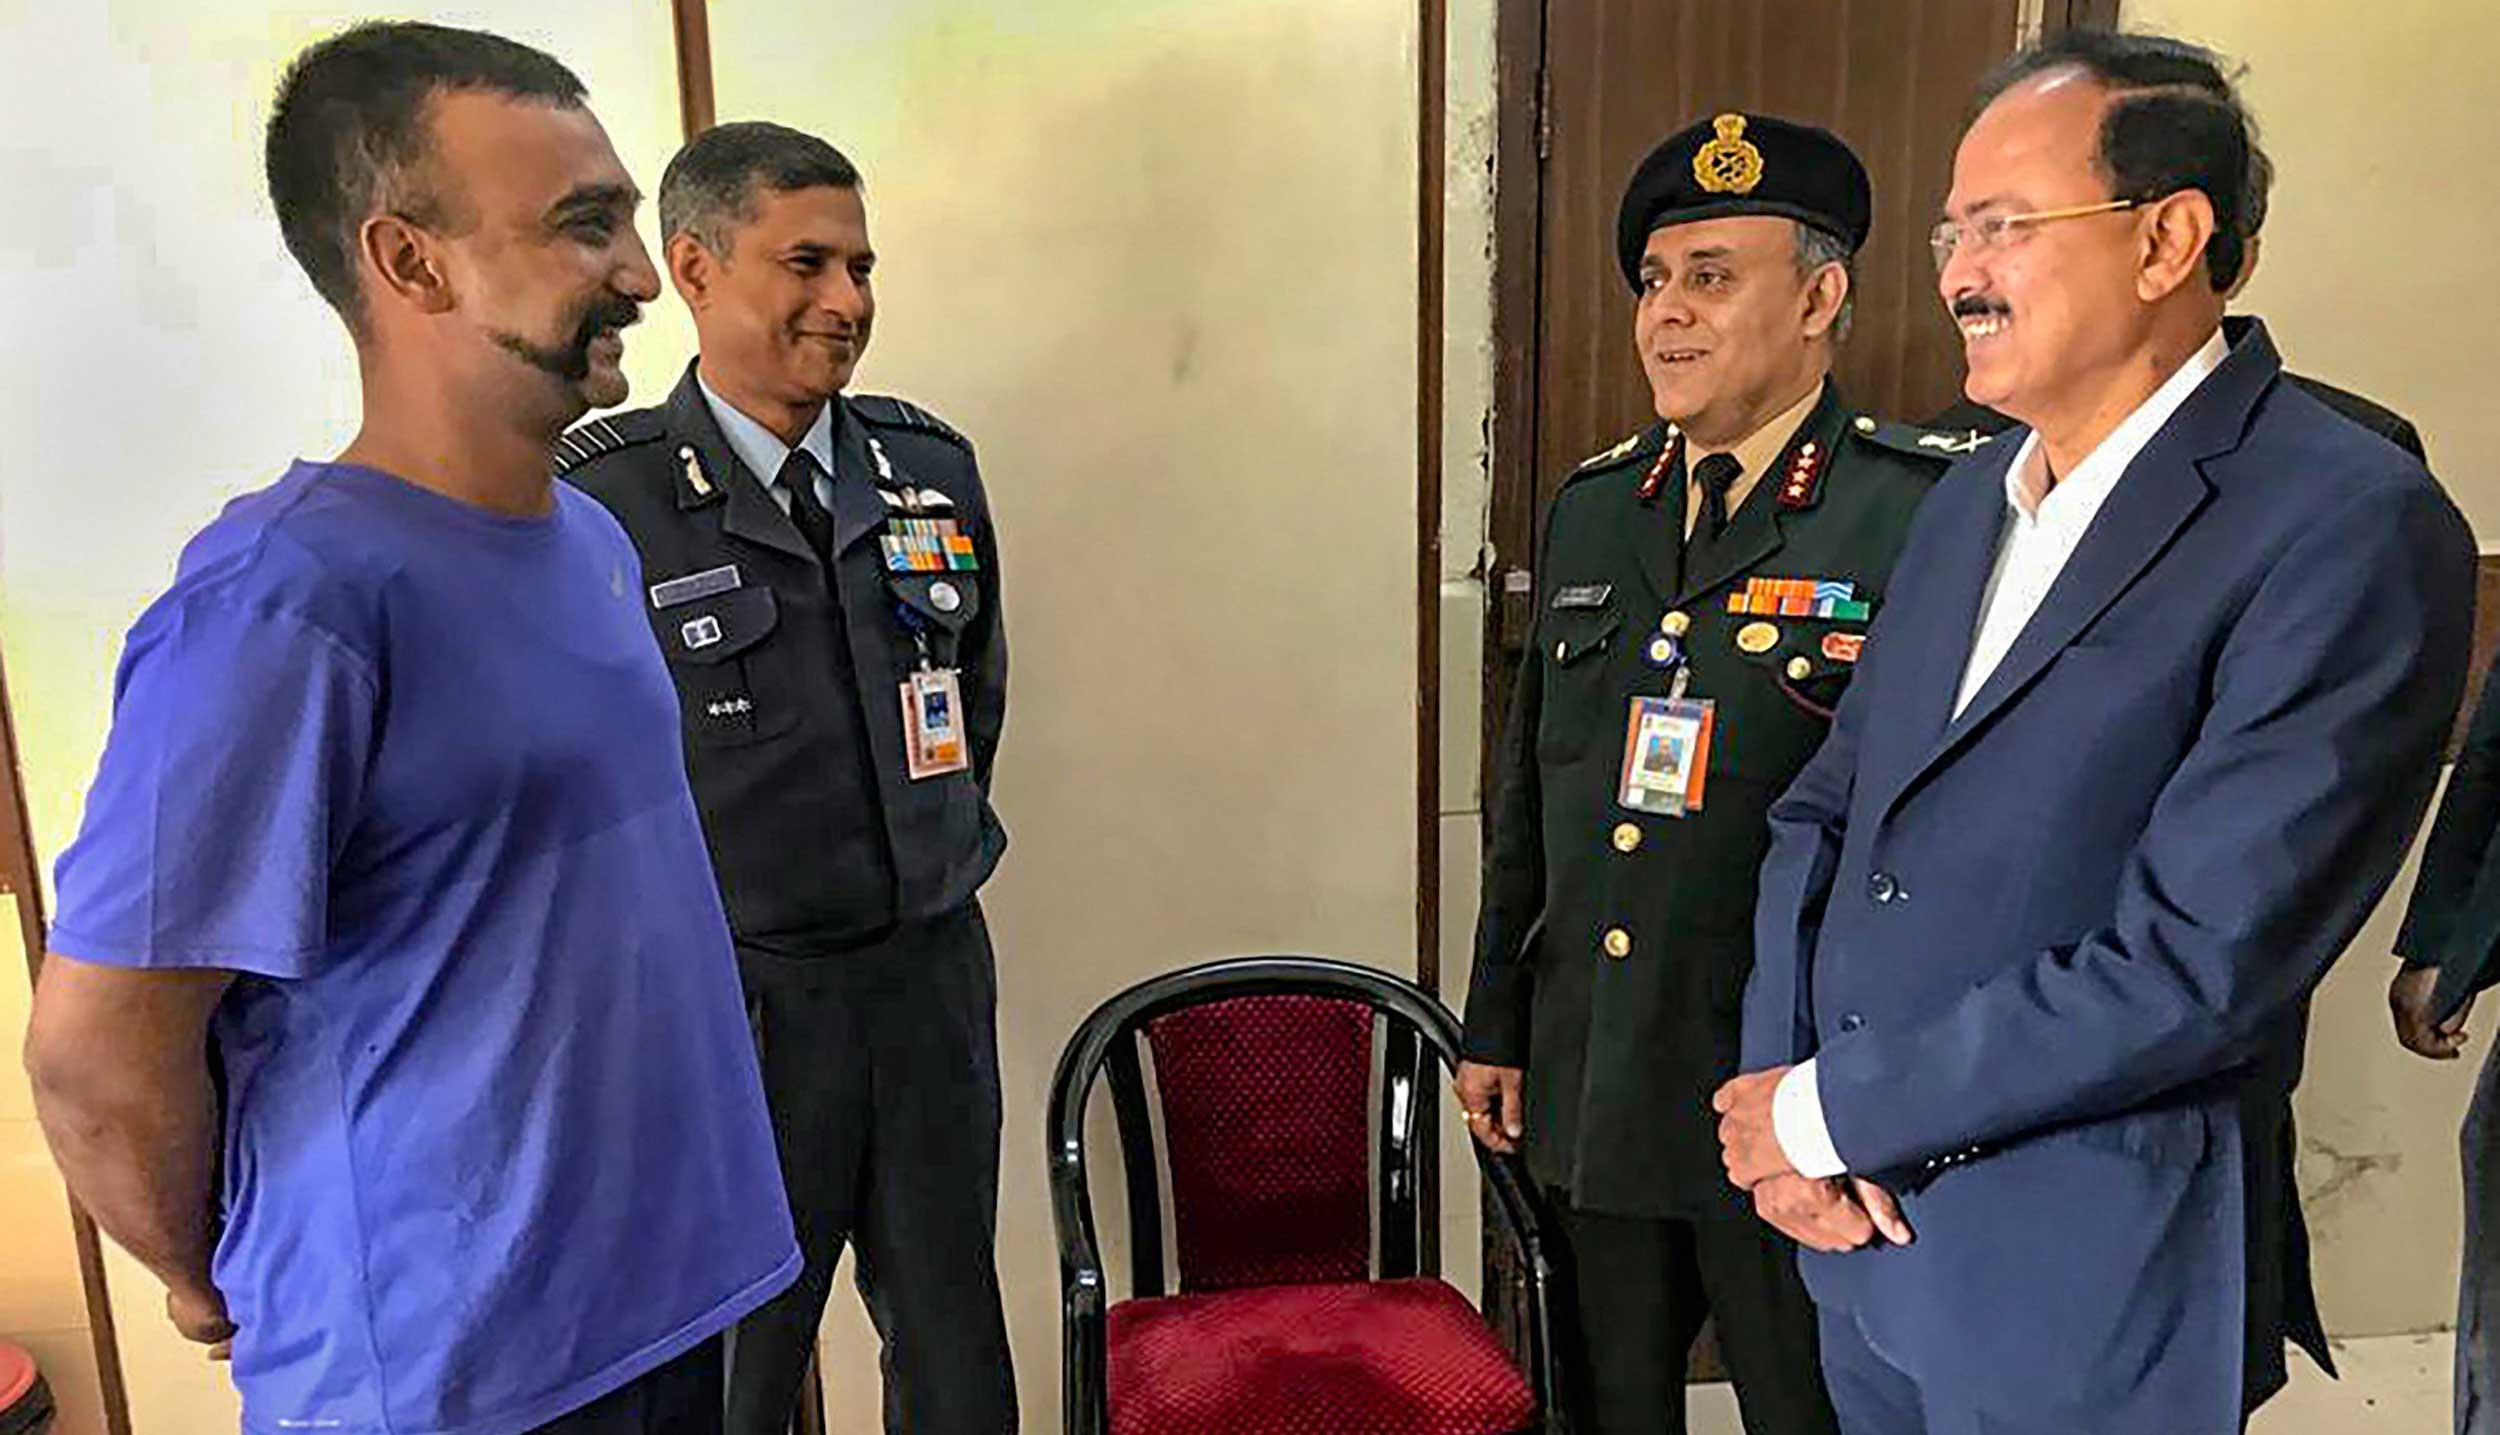 Minister of state for defence Subhash Bhamre meets IAF Wing Commander Abhinandan Varthaman at Research and Referral Hospital in New Delhi Cantonment, on March 3, 2019.